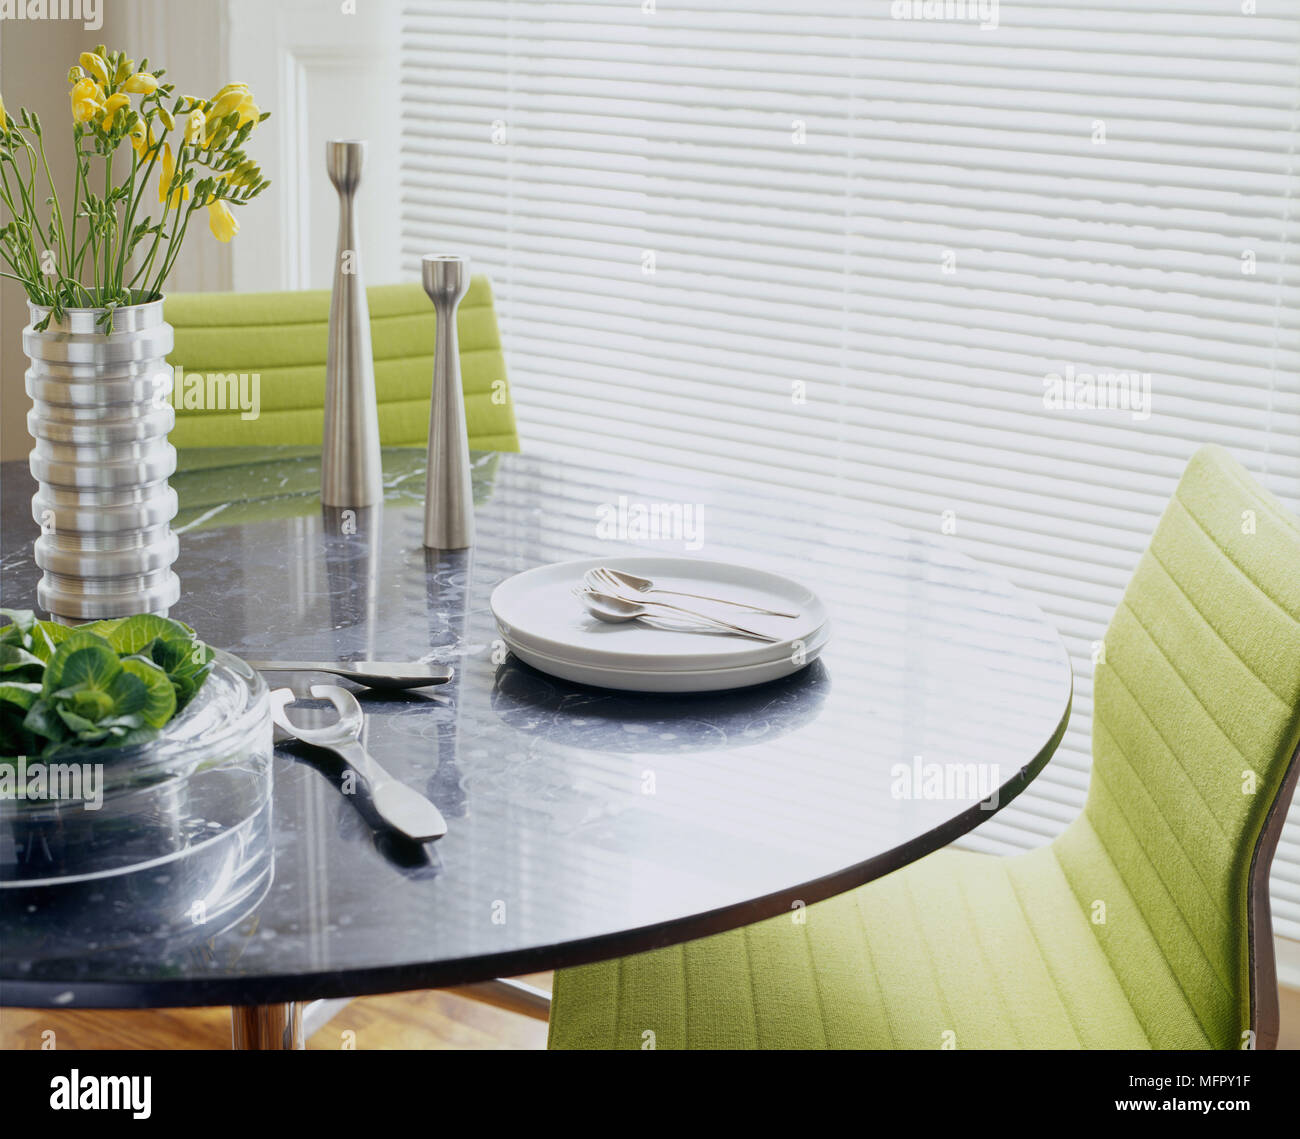 A Modern Dining Room With Round Table Upholstered Lime Green Chairs White Tableware Steel Vases Stock Photo Alamy